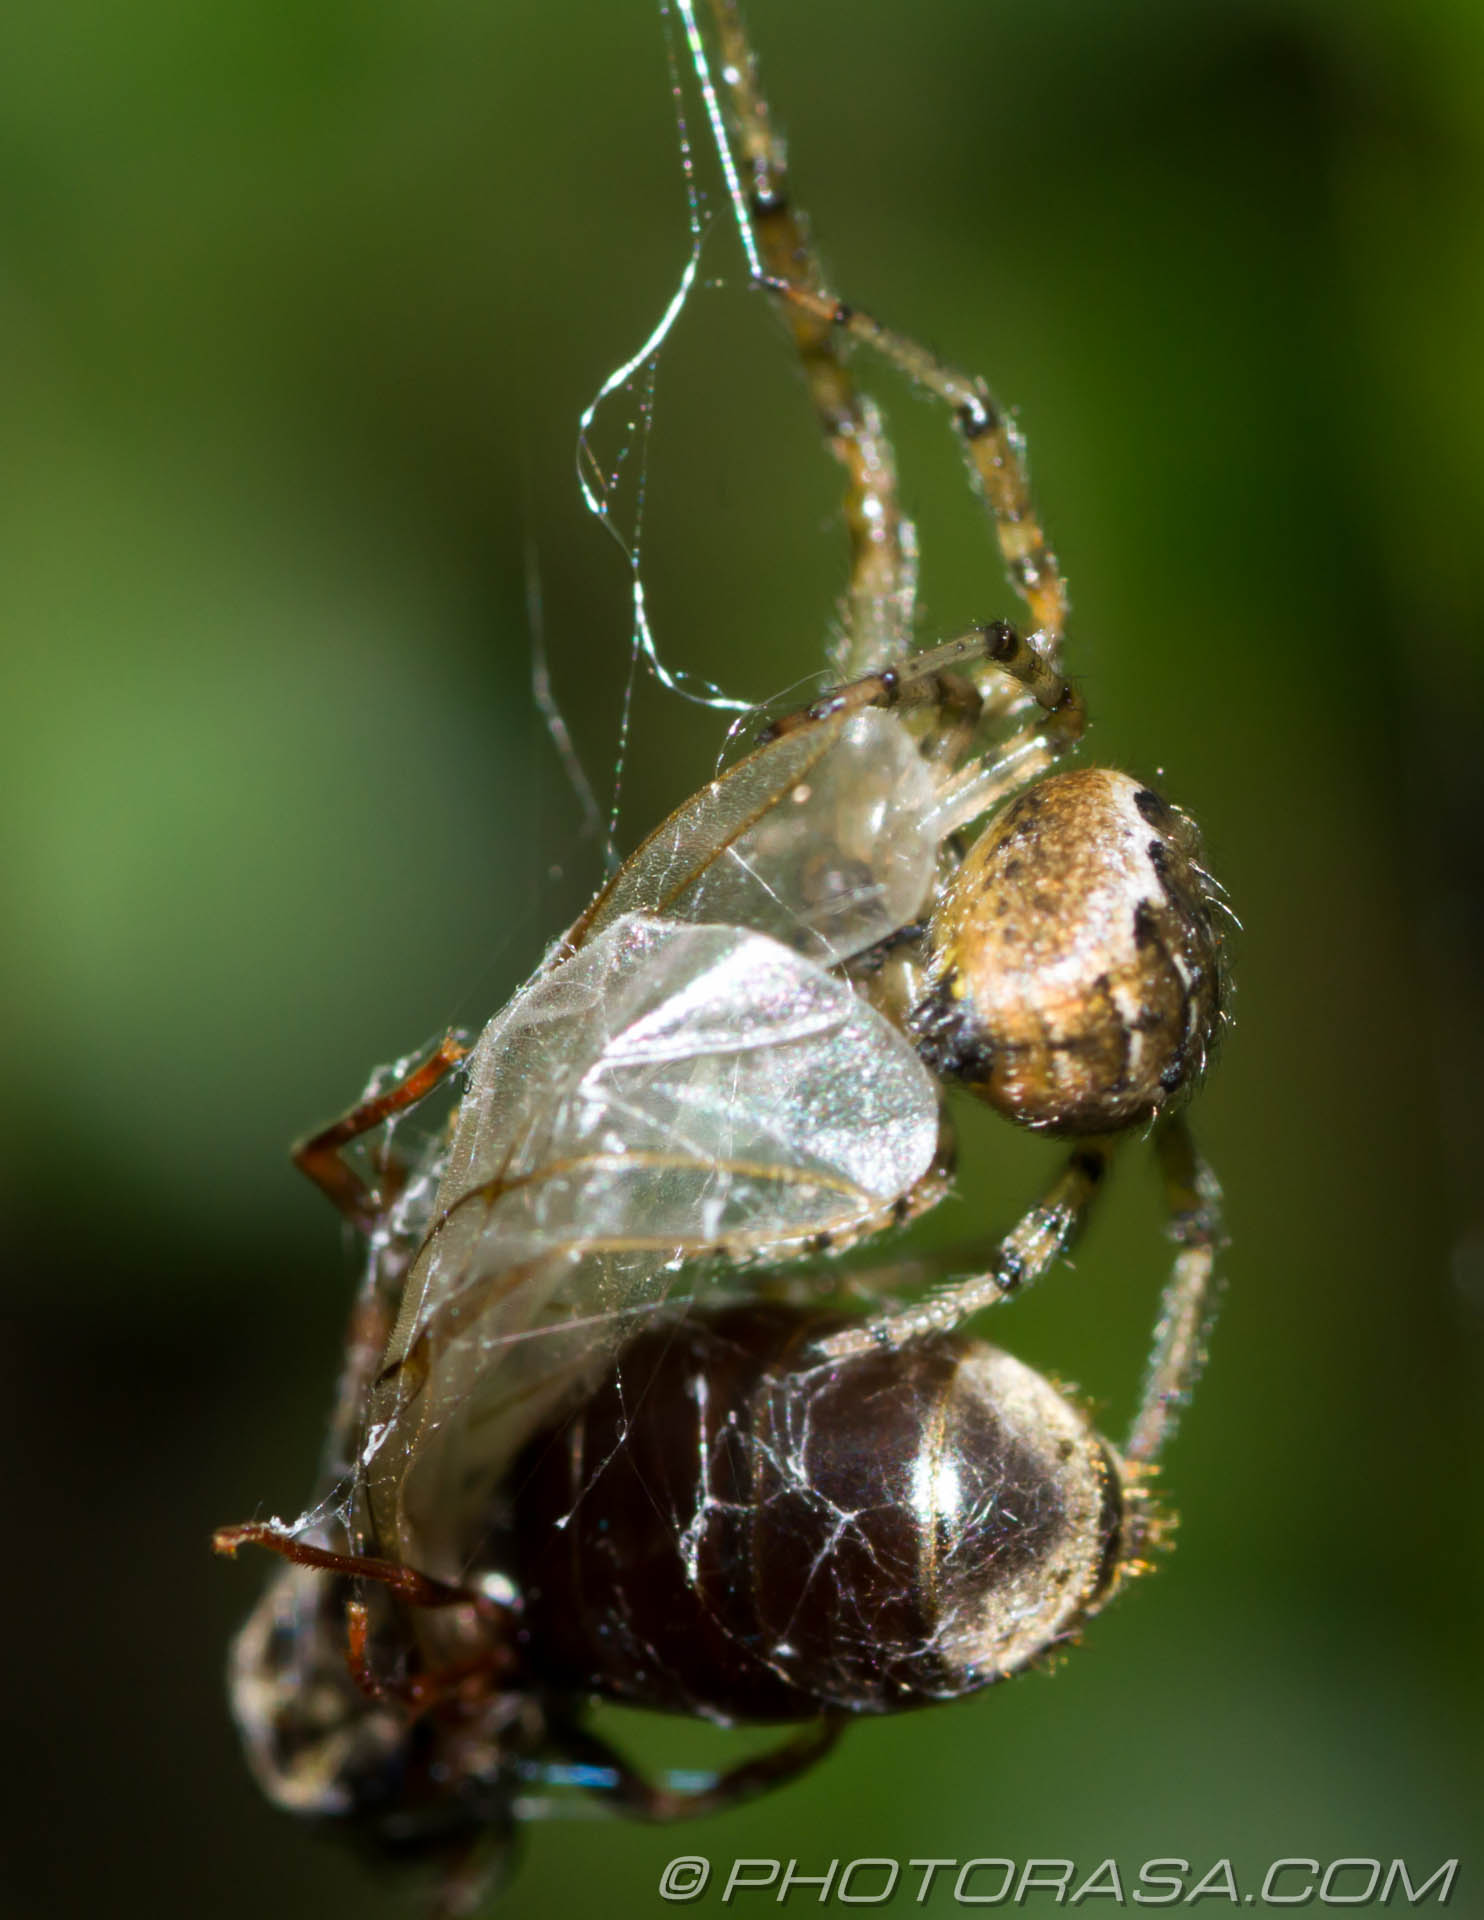 http://photorasa.com/spider-trapping-wrapping-fly/taking-her-prey-back-to-the-lair/